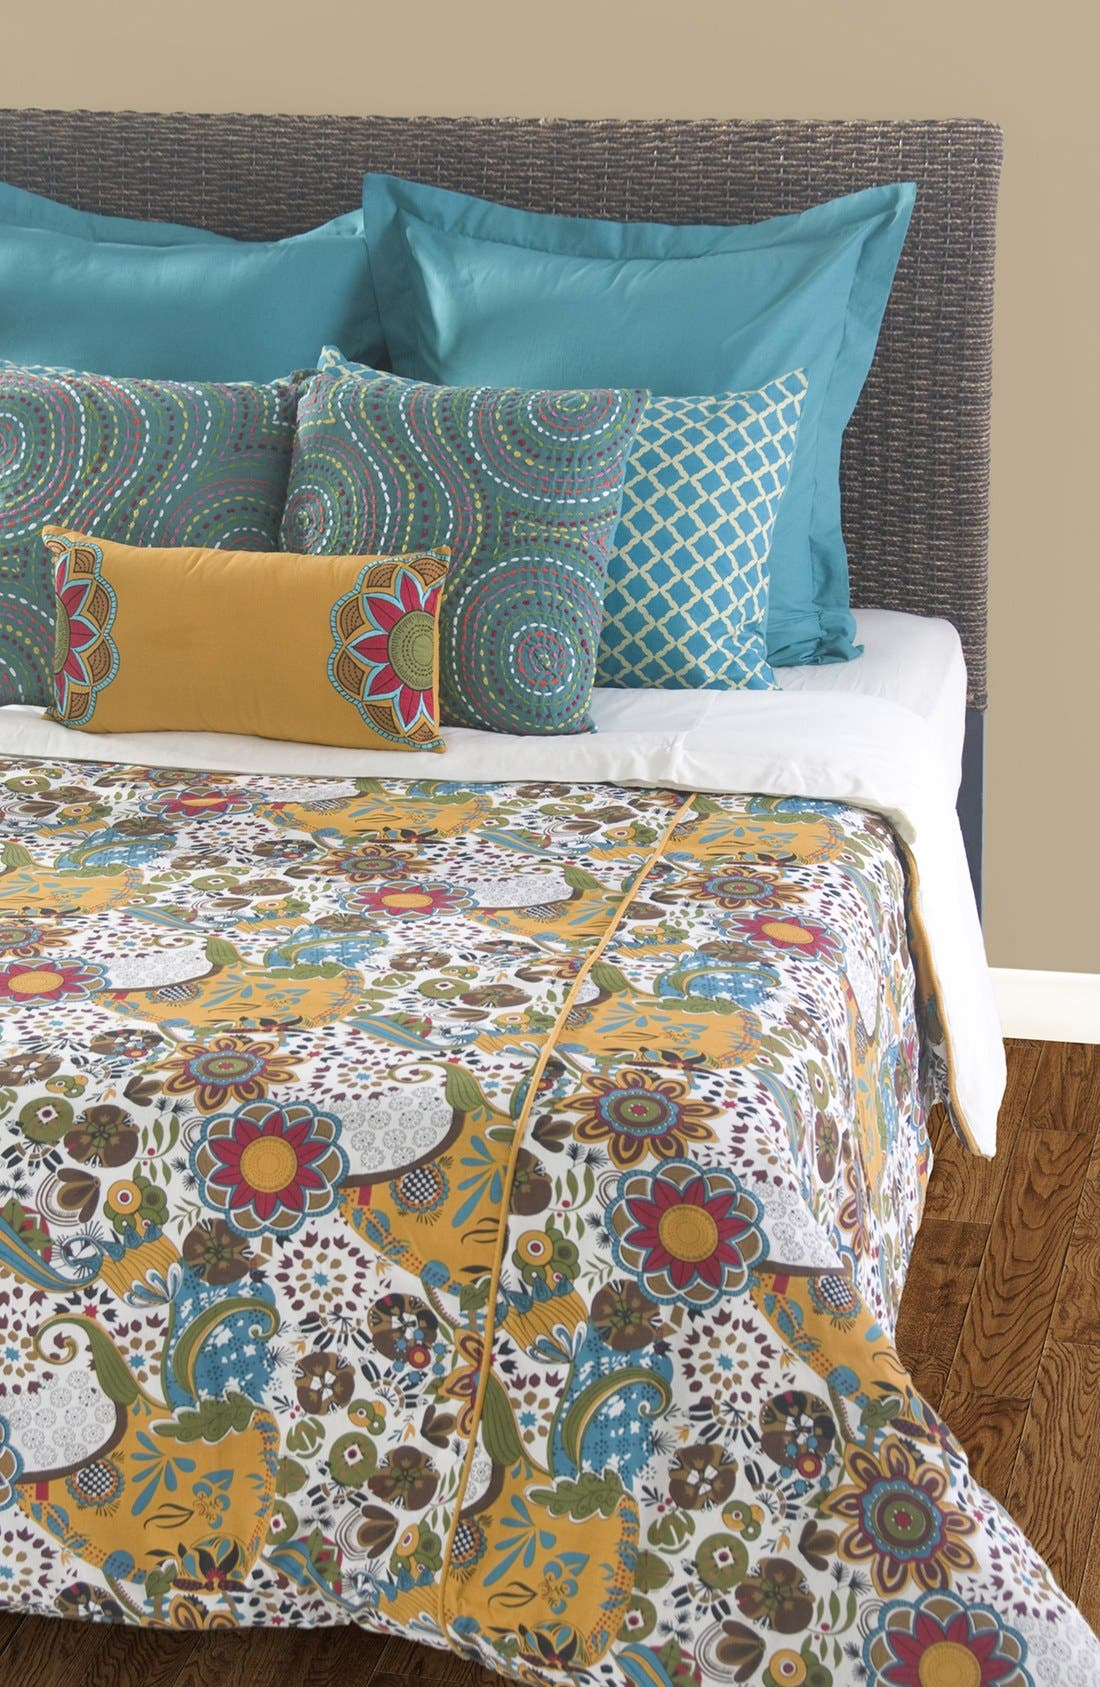 Main Image - Rizzy Home Carmen Duvet Cover & Sham Set